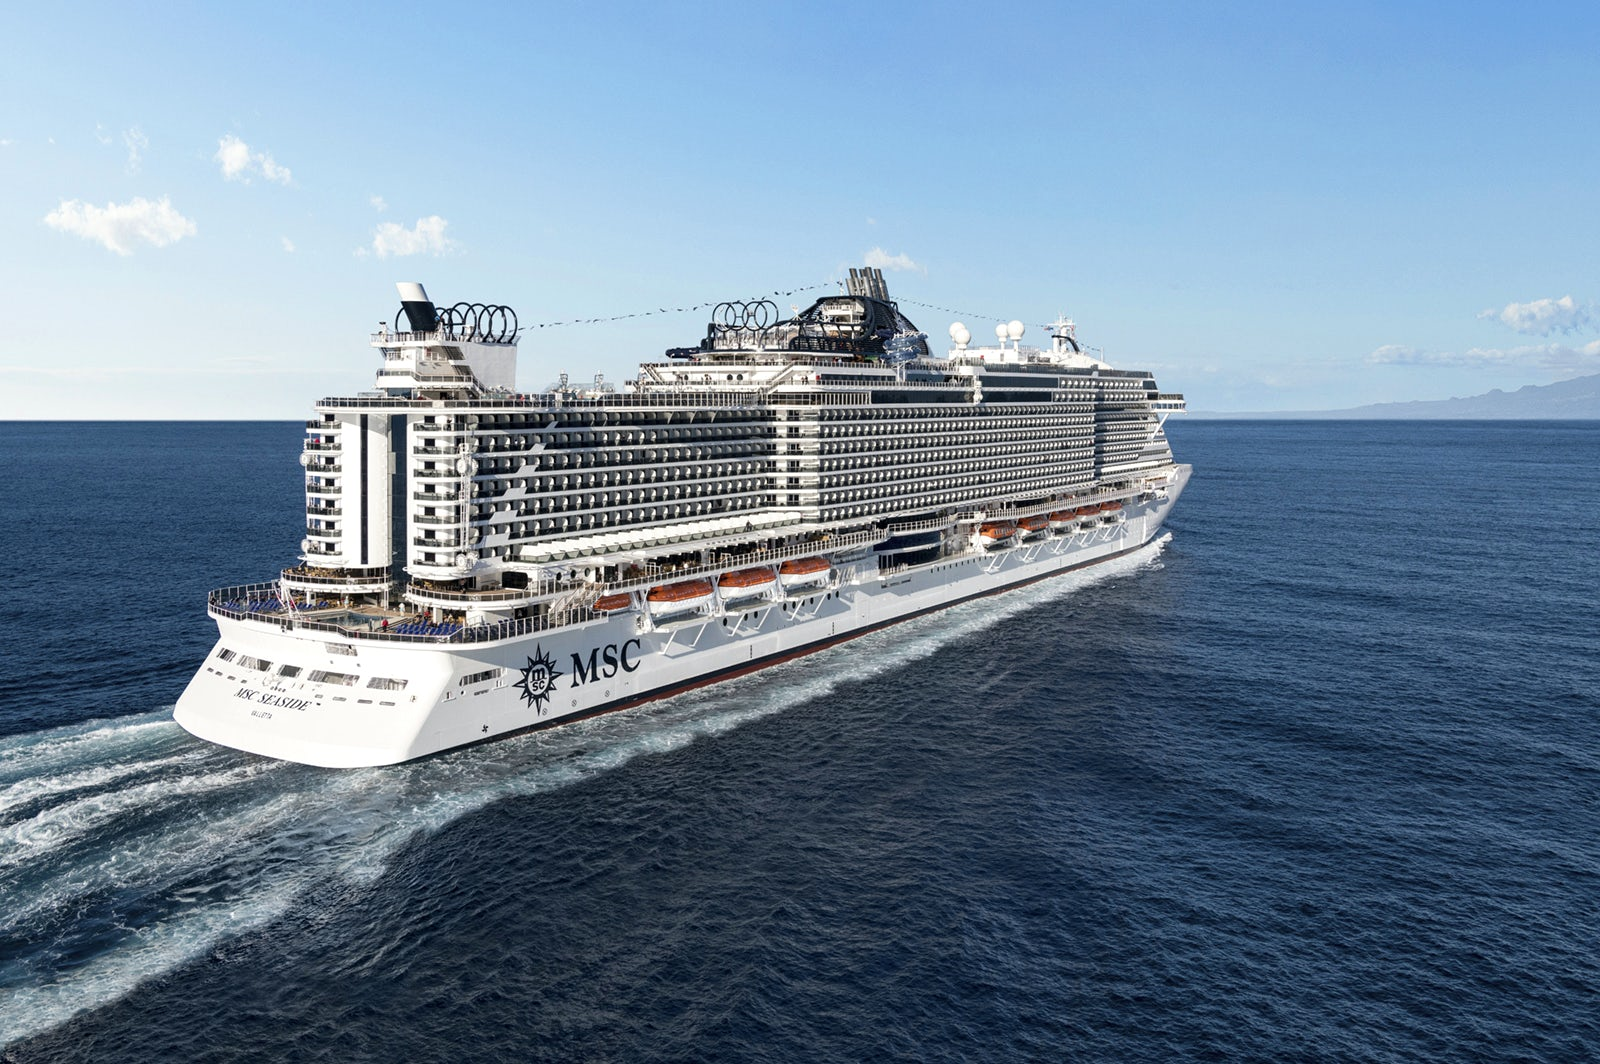 MSC Cruises - Escape to Sea!